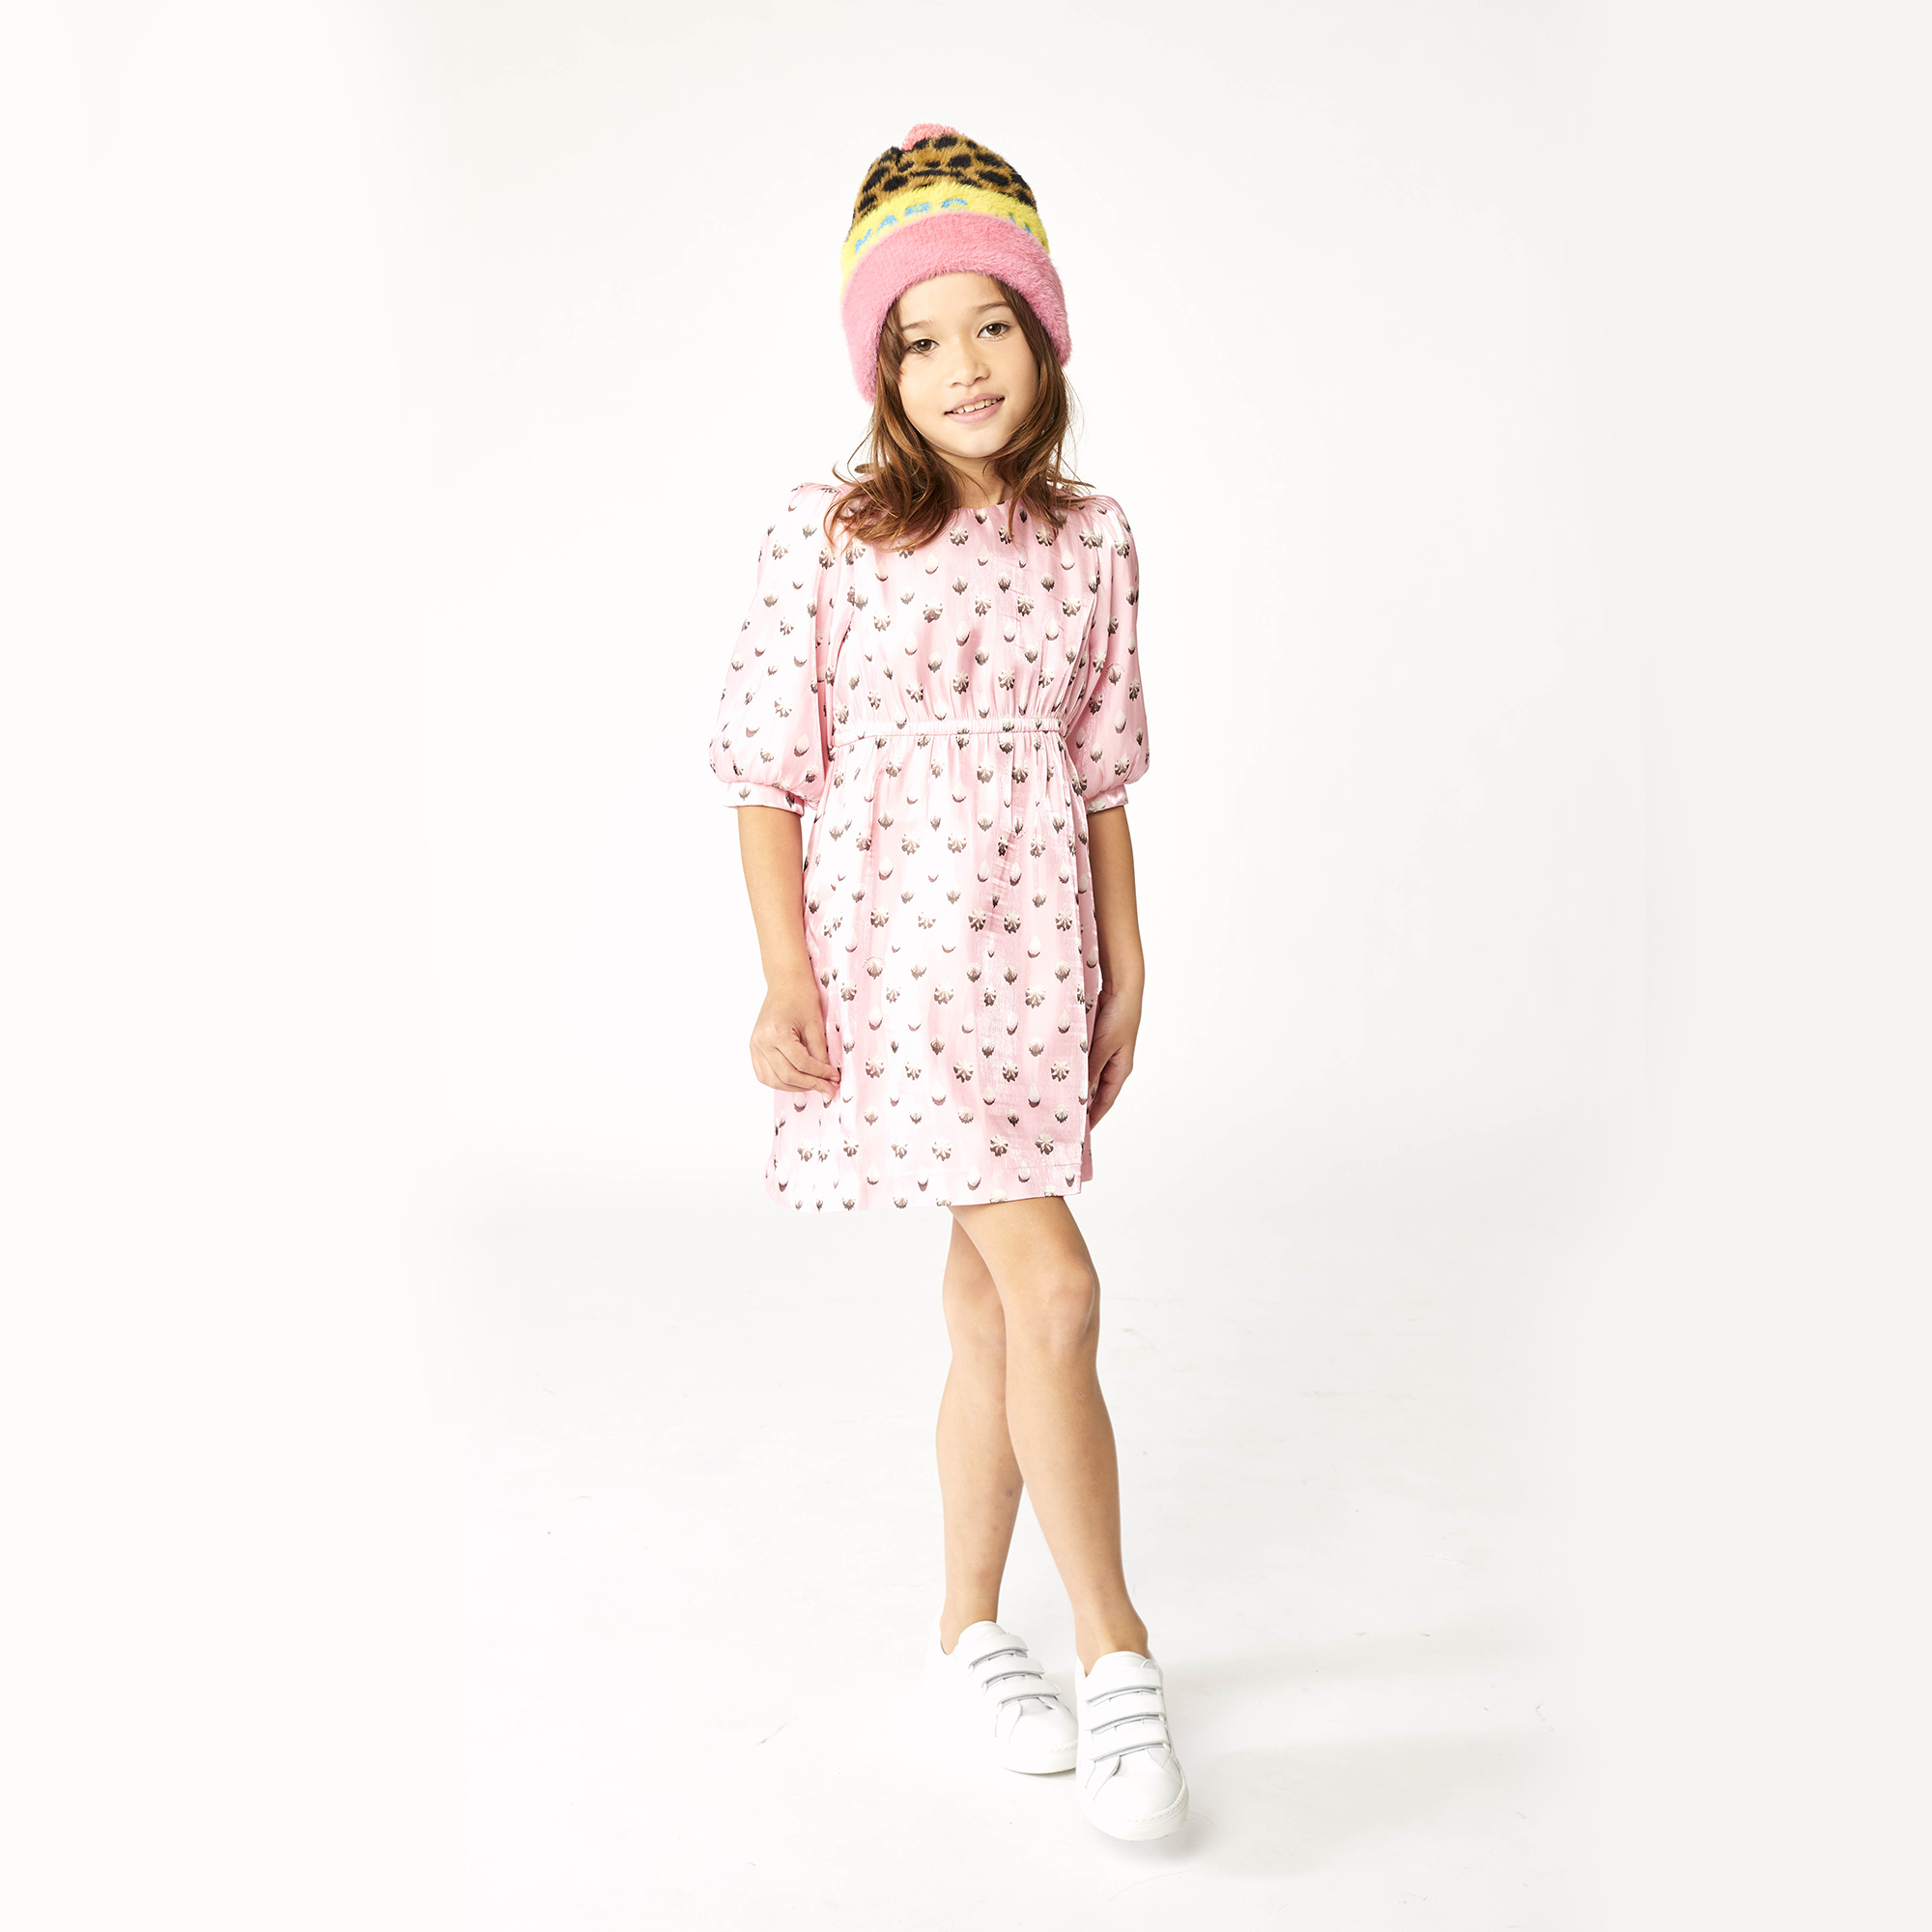 PULL ON HAT THE MARC JACOBS for GIRL